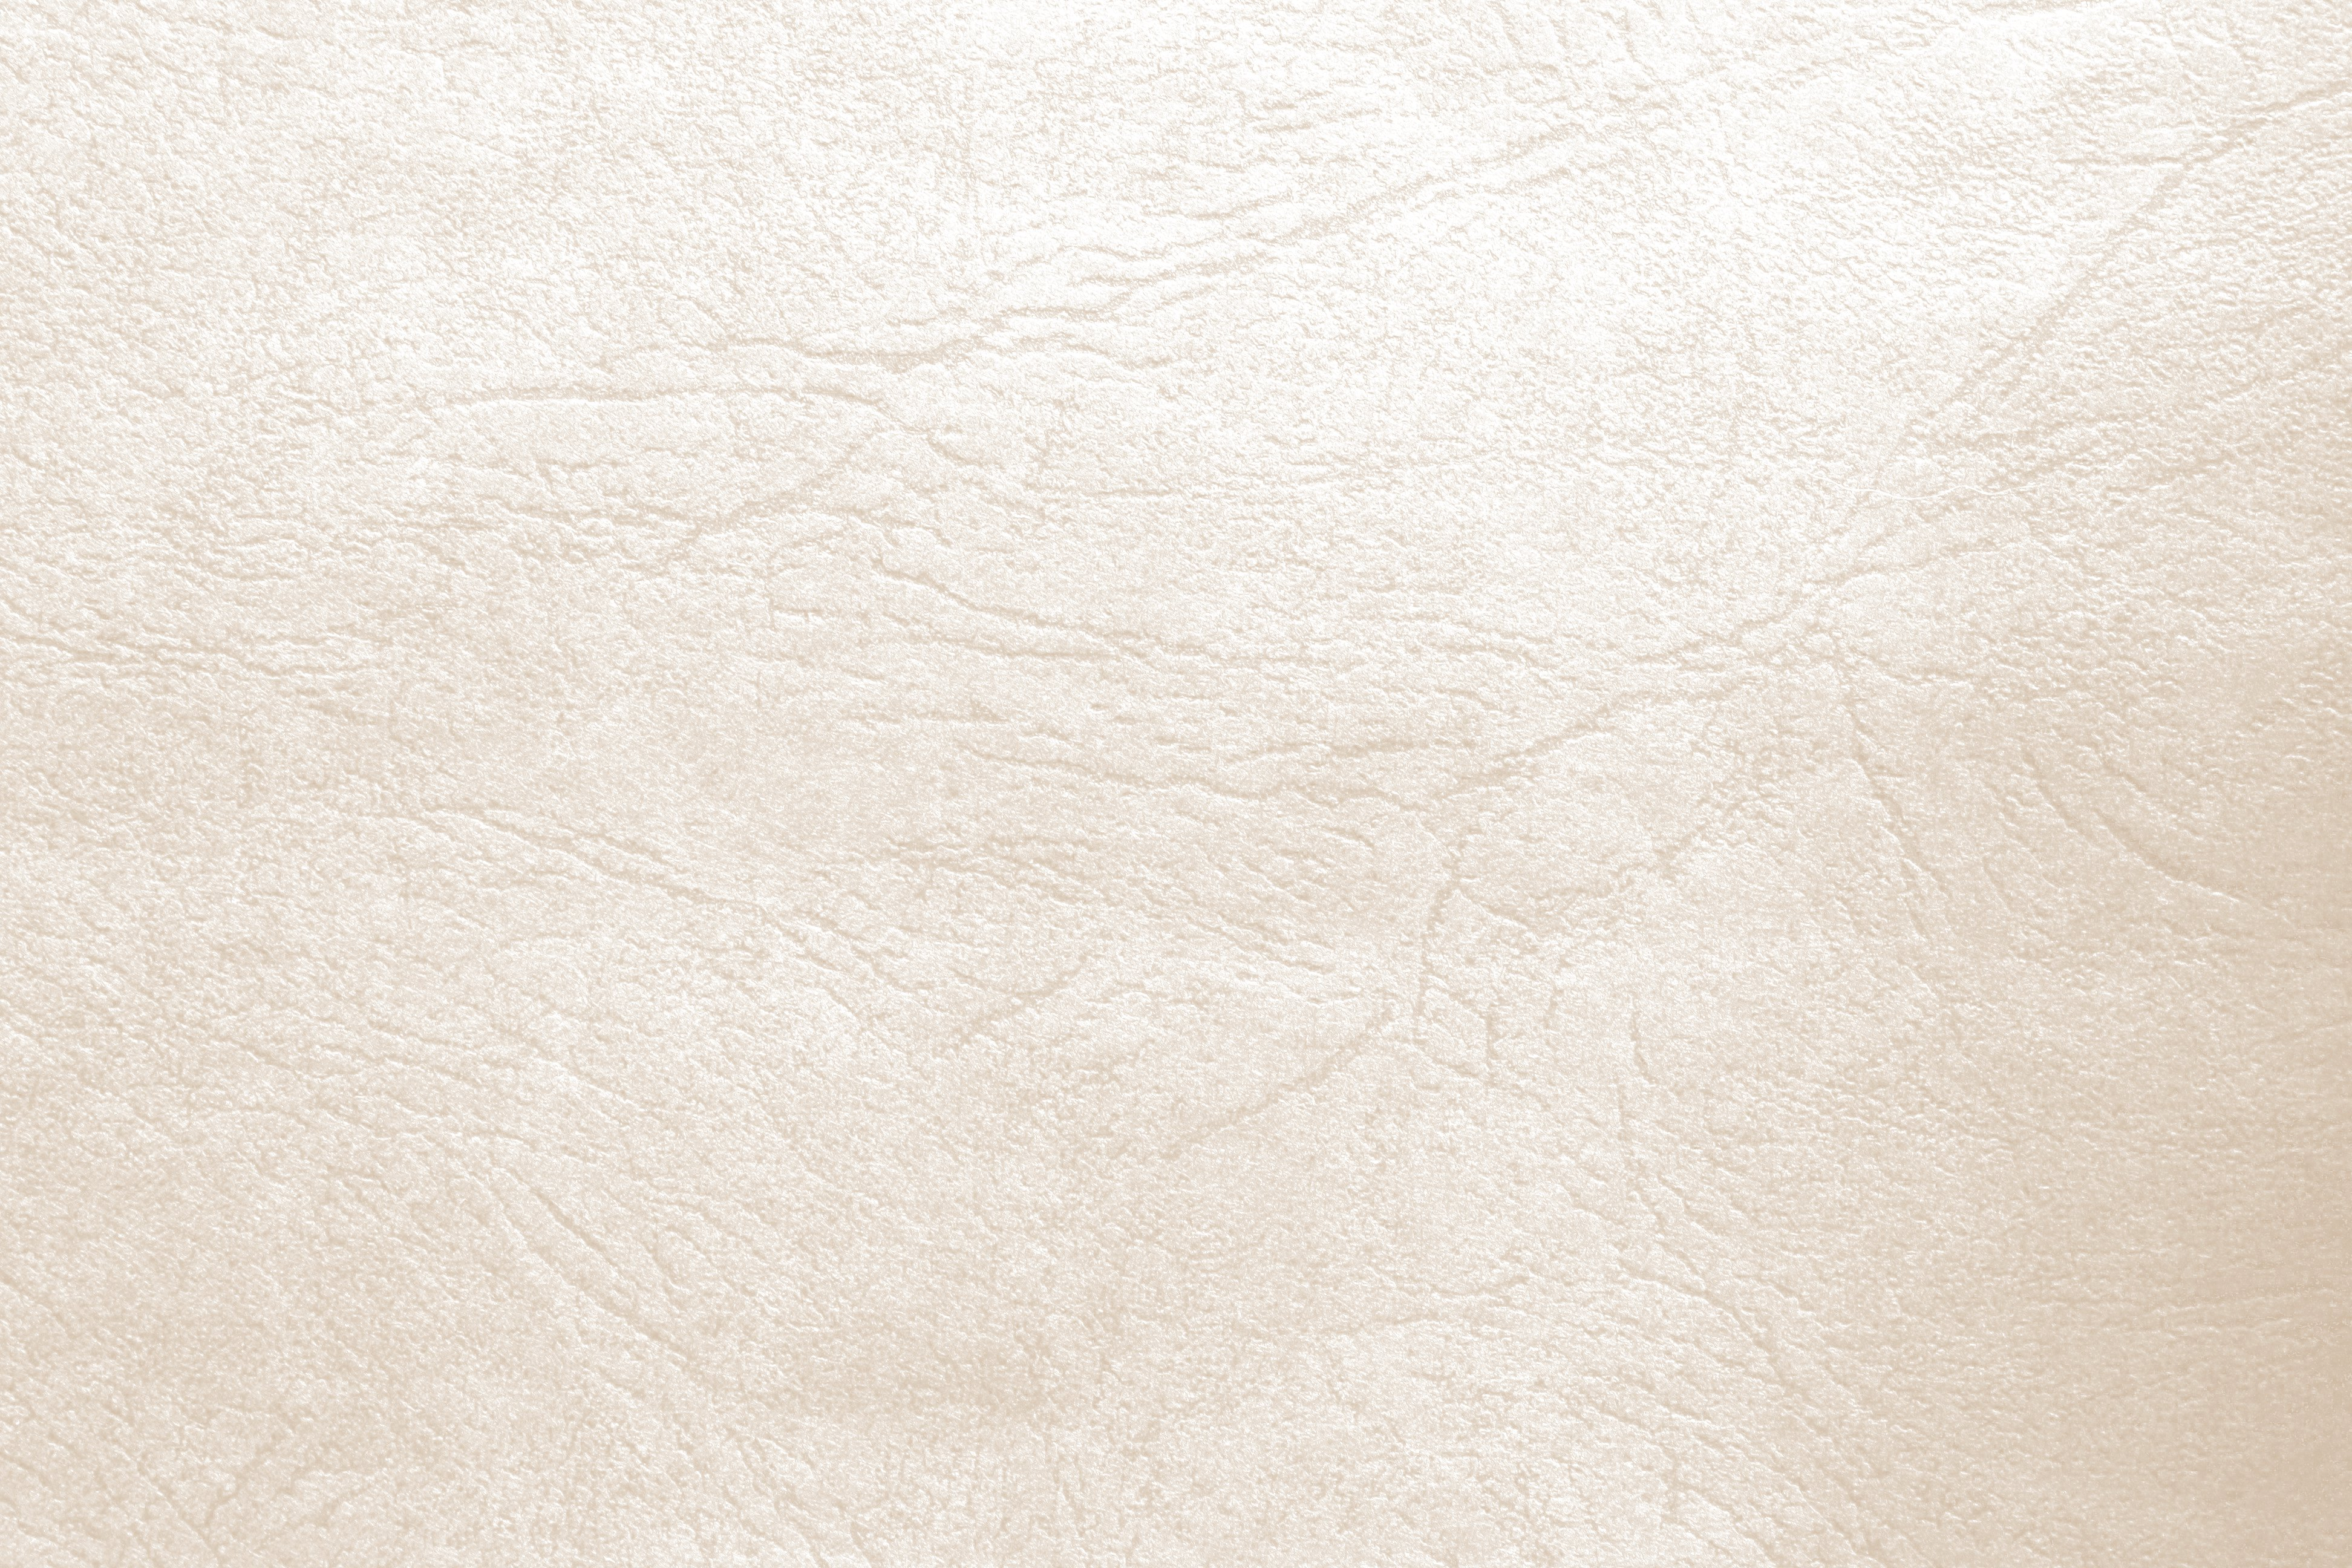 Ivory Cream Colored Leather Texture Picture Photograph Photos 3888x2592